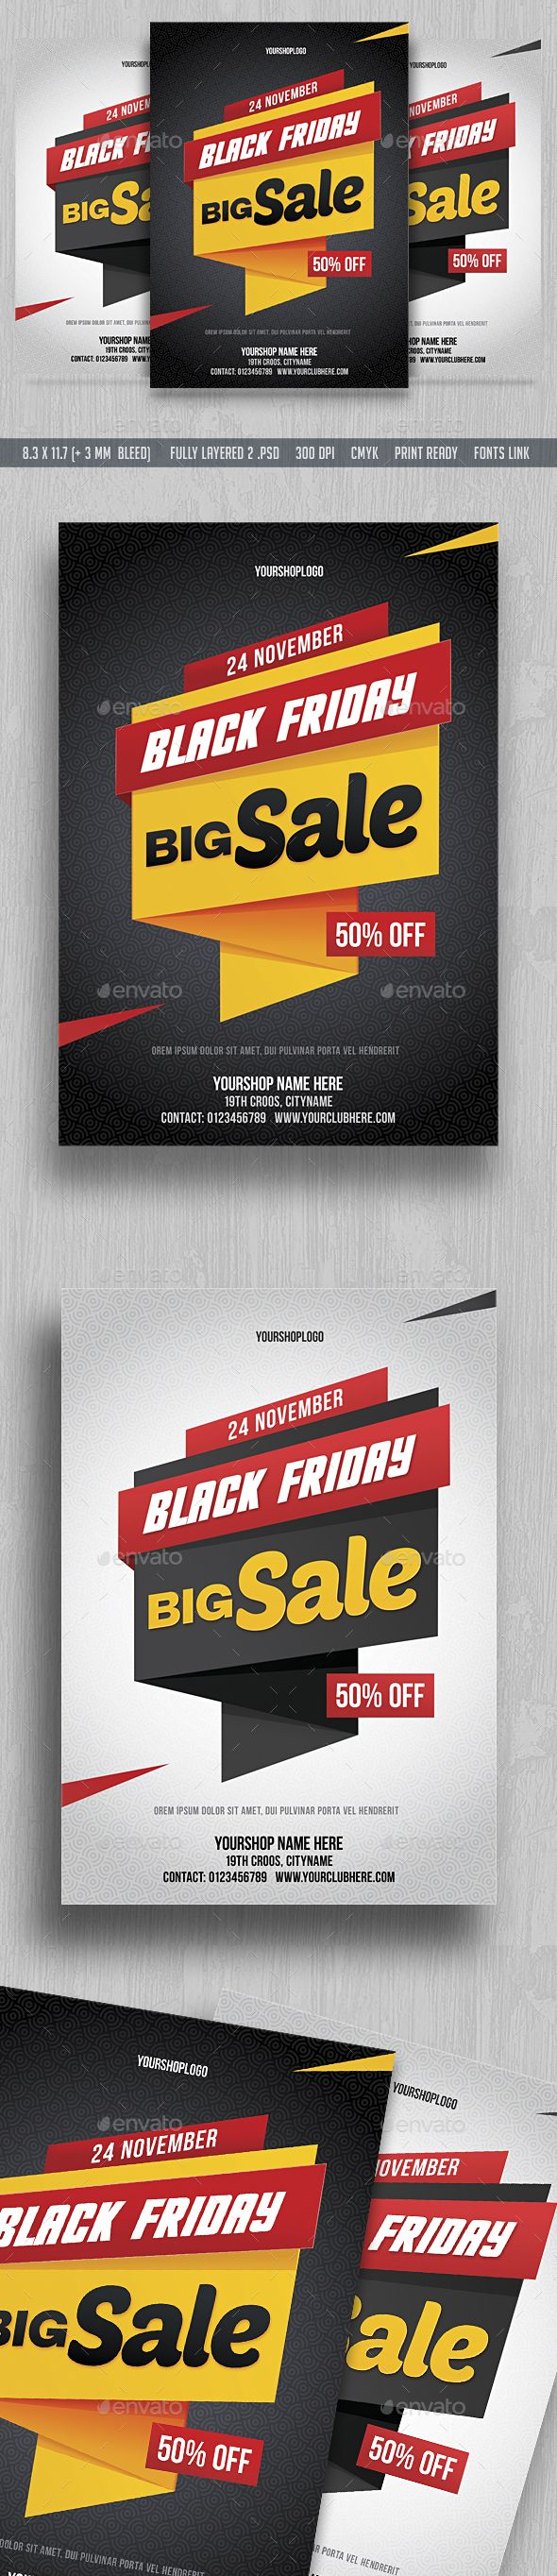 Black Friday Sale Flyer  — PSD Template #friday #discount • Download ➝ https://graphicriver.net/item/black-friday-sale-flyer/18522033?ref=pxcr